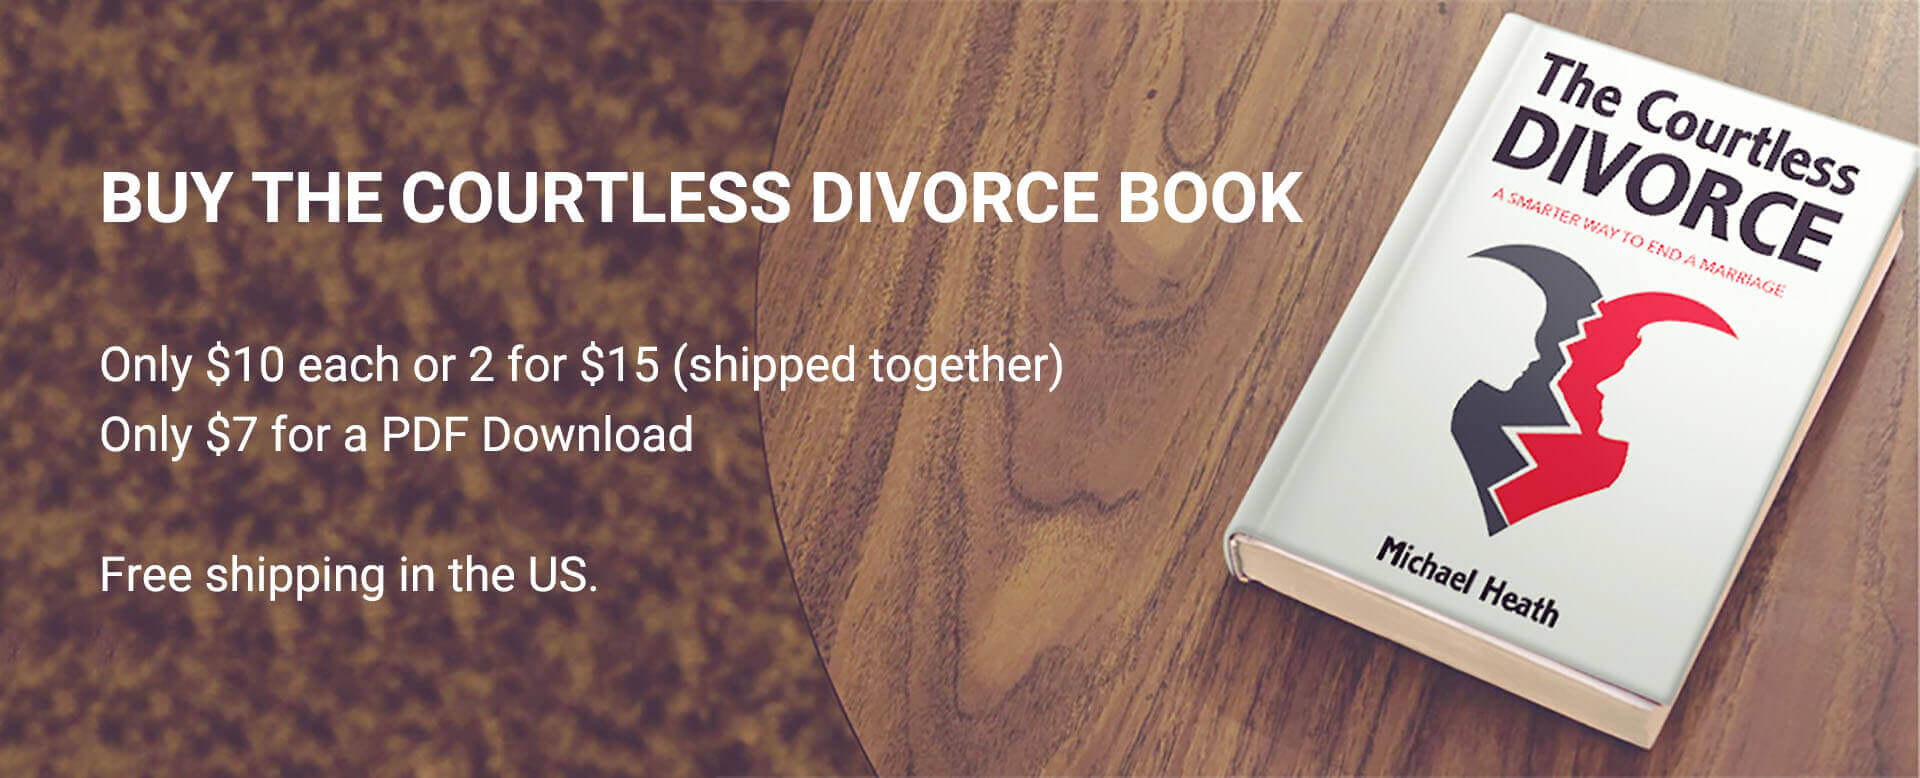 buy The Courtless Divorce book